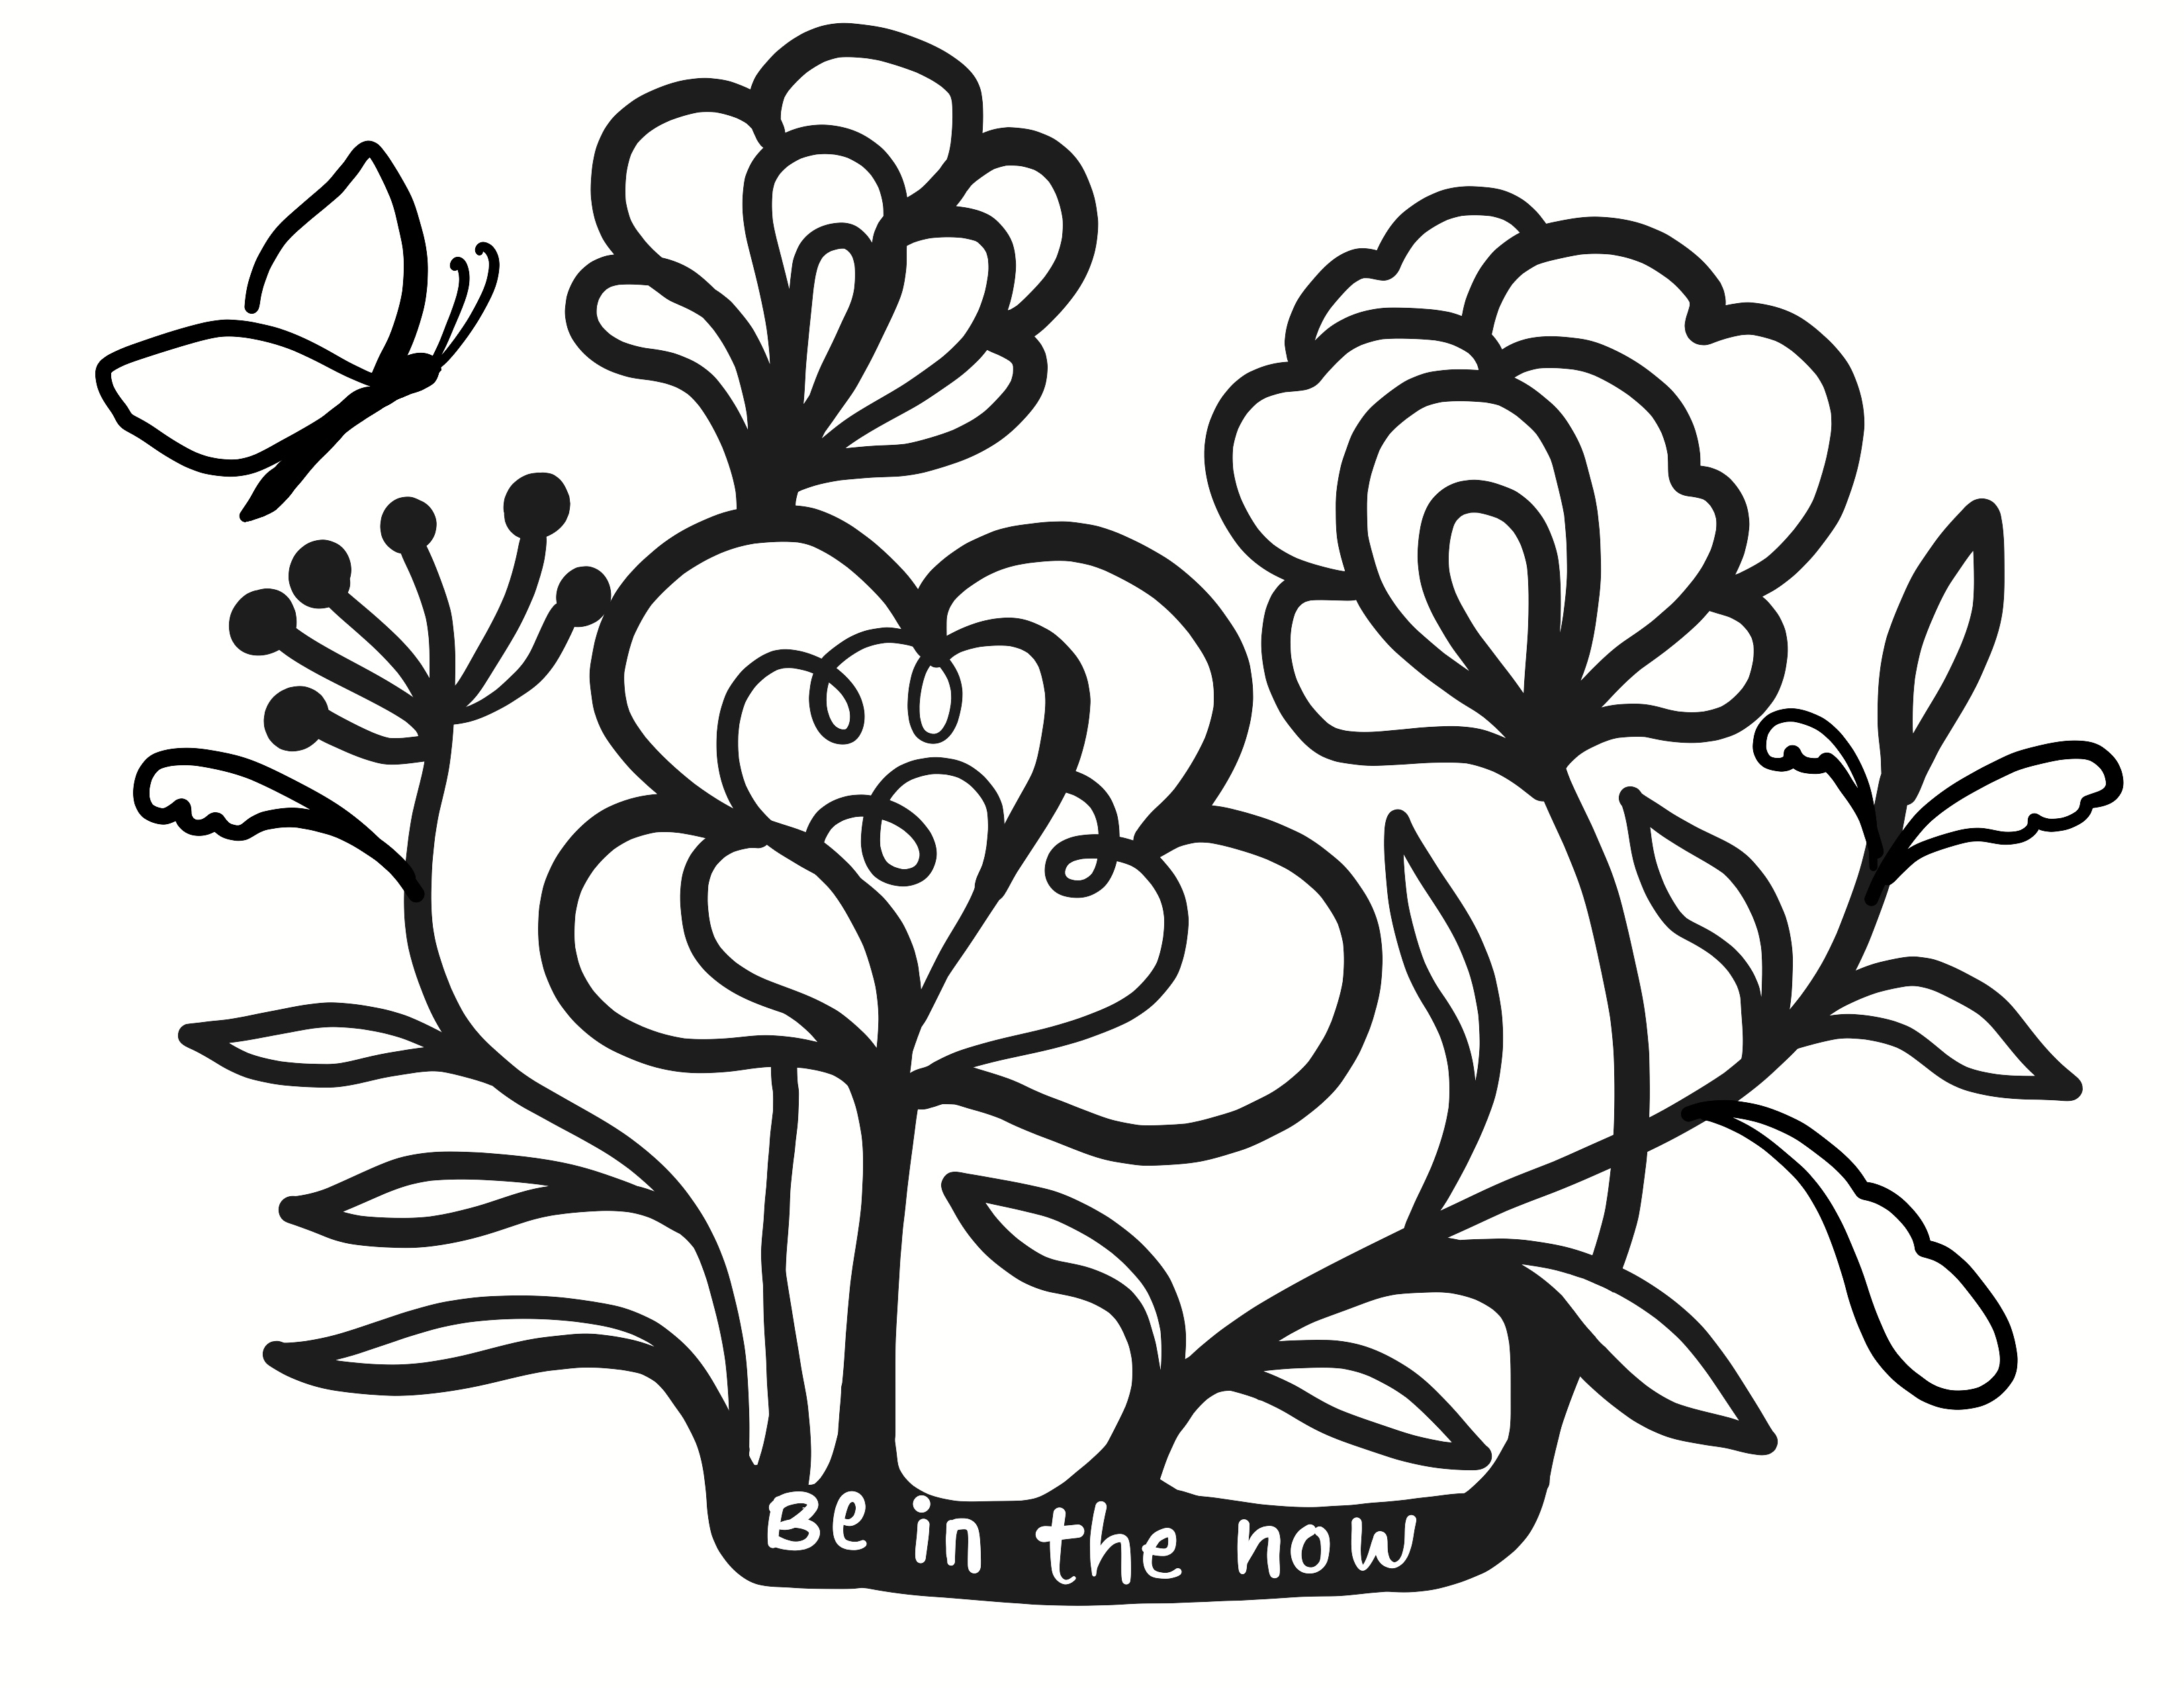 Be in the now